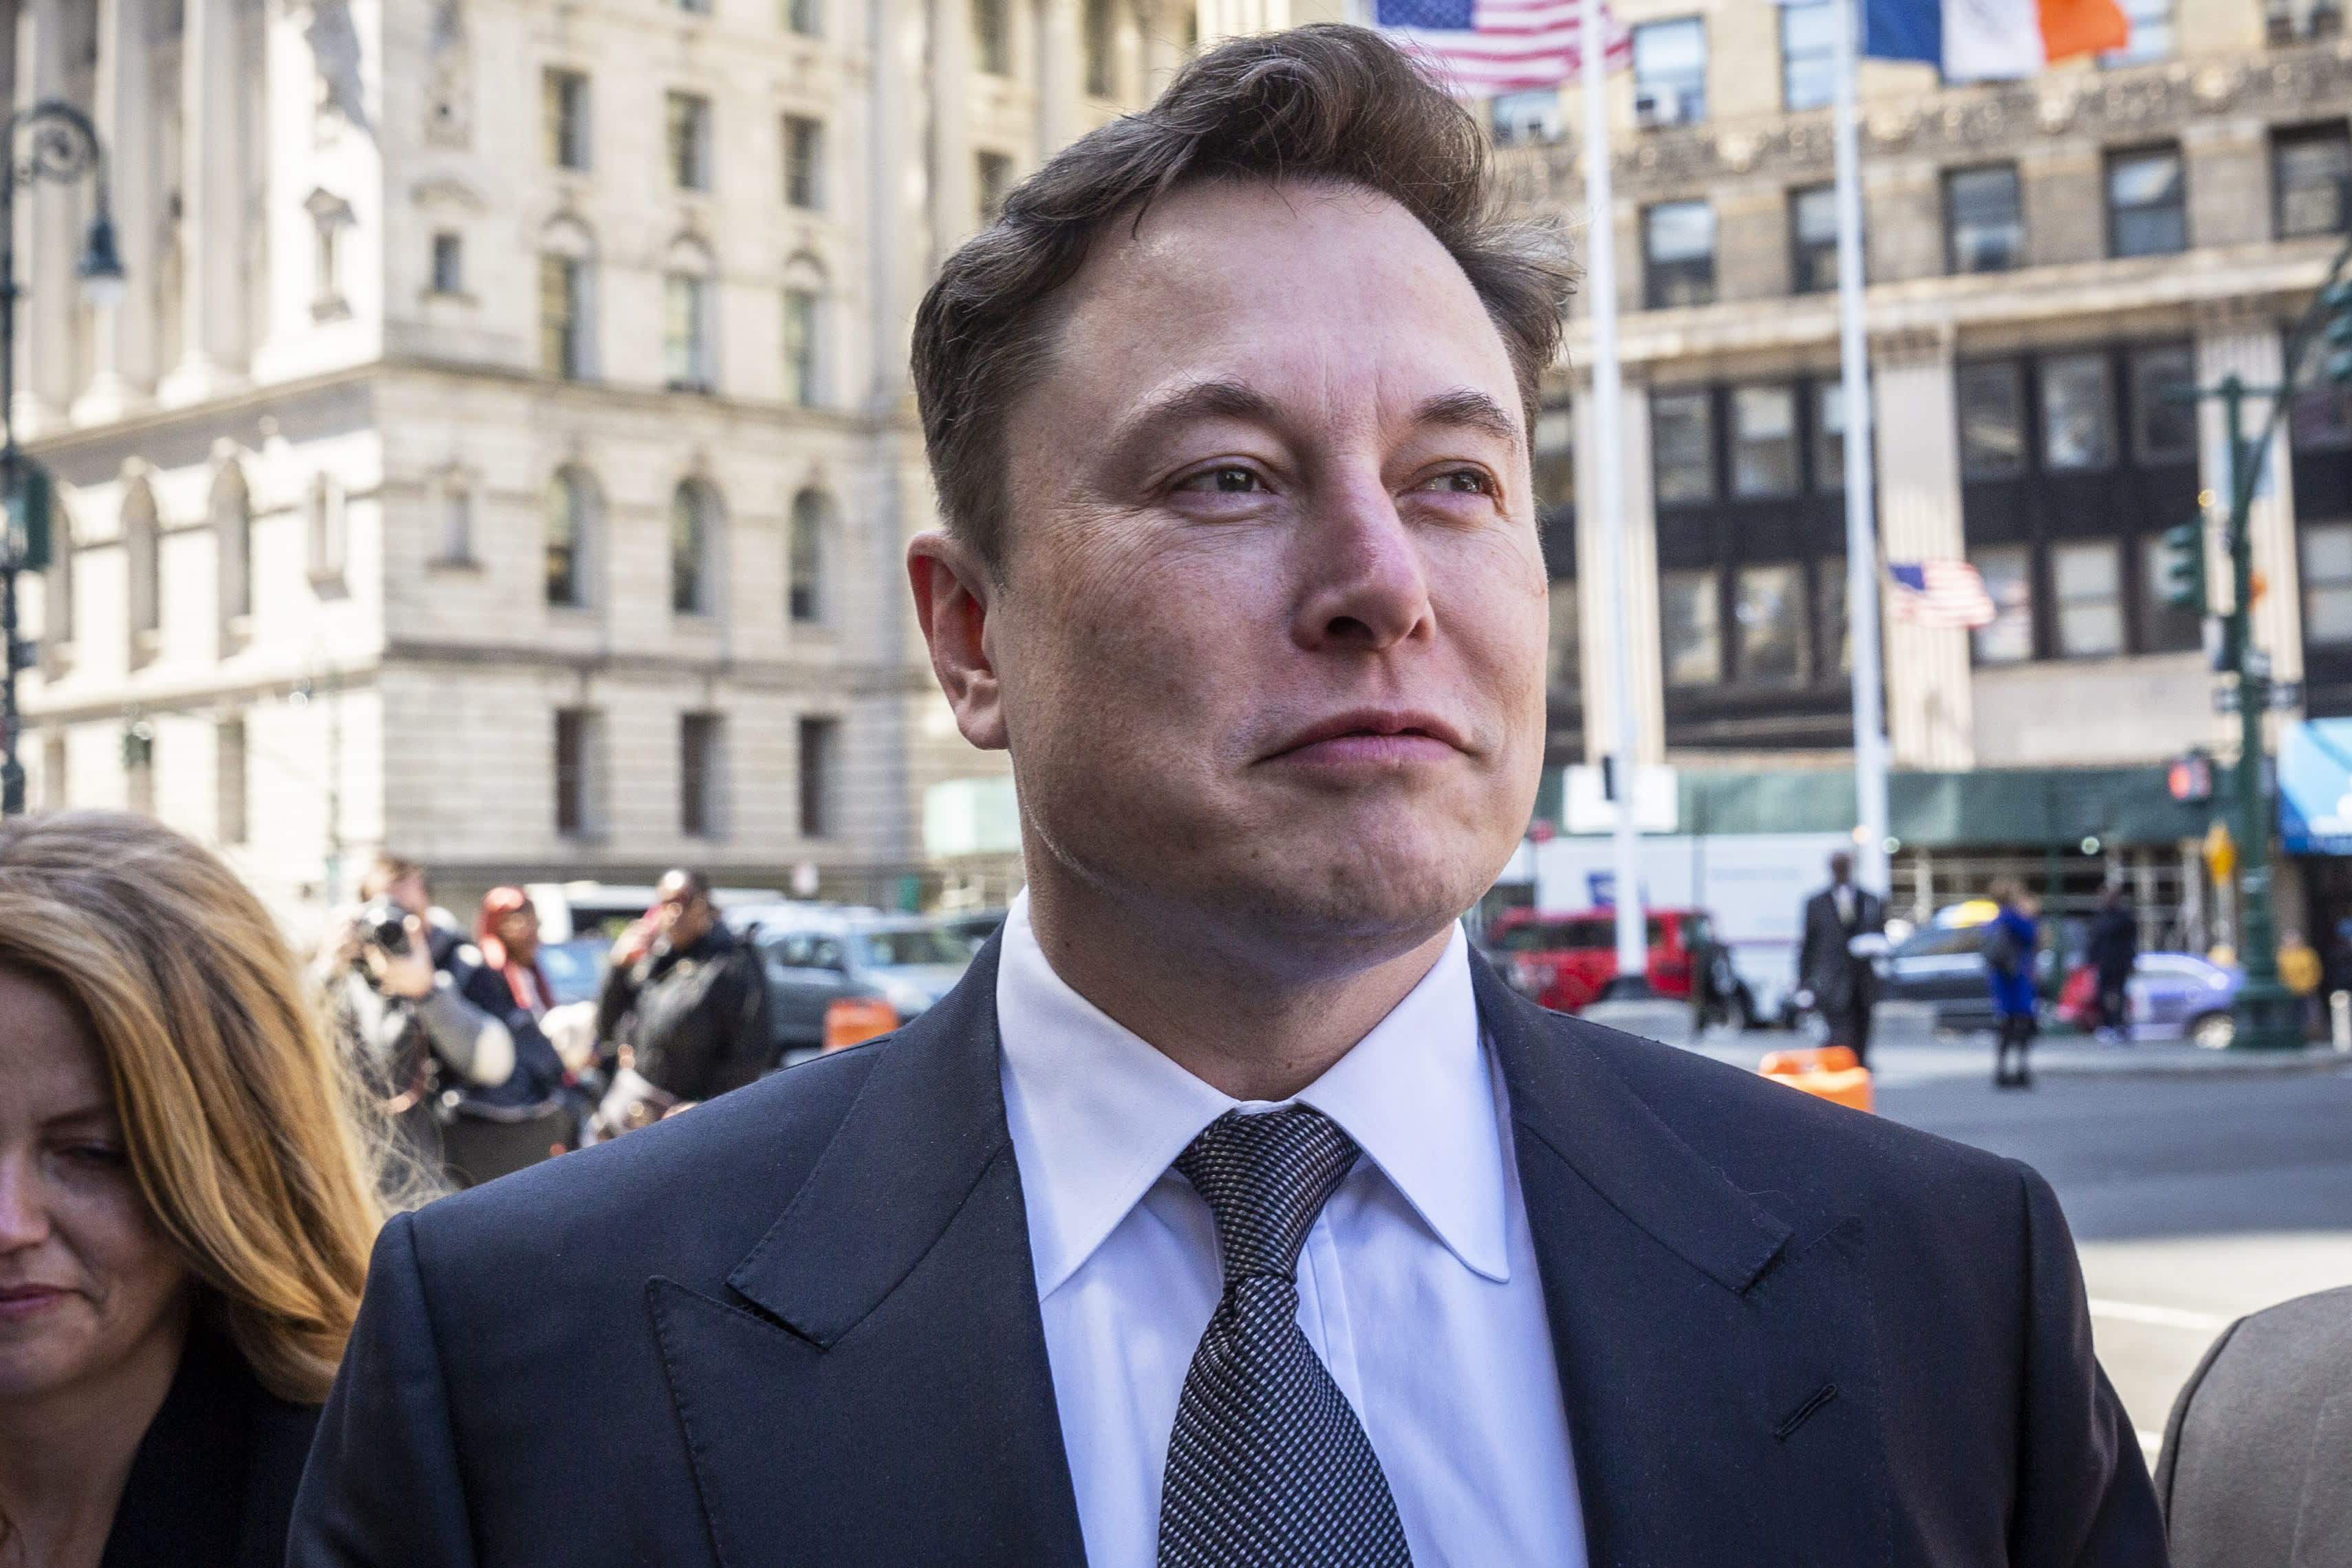 Another analyst just put out a shocking bear case for Tesla: Citi sees chance stock drops to $36